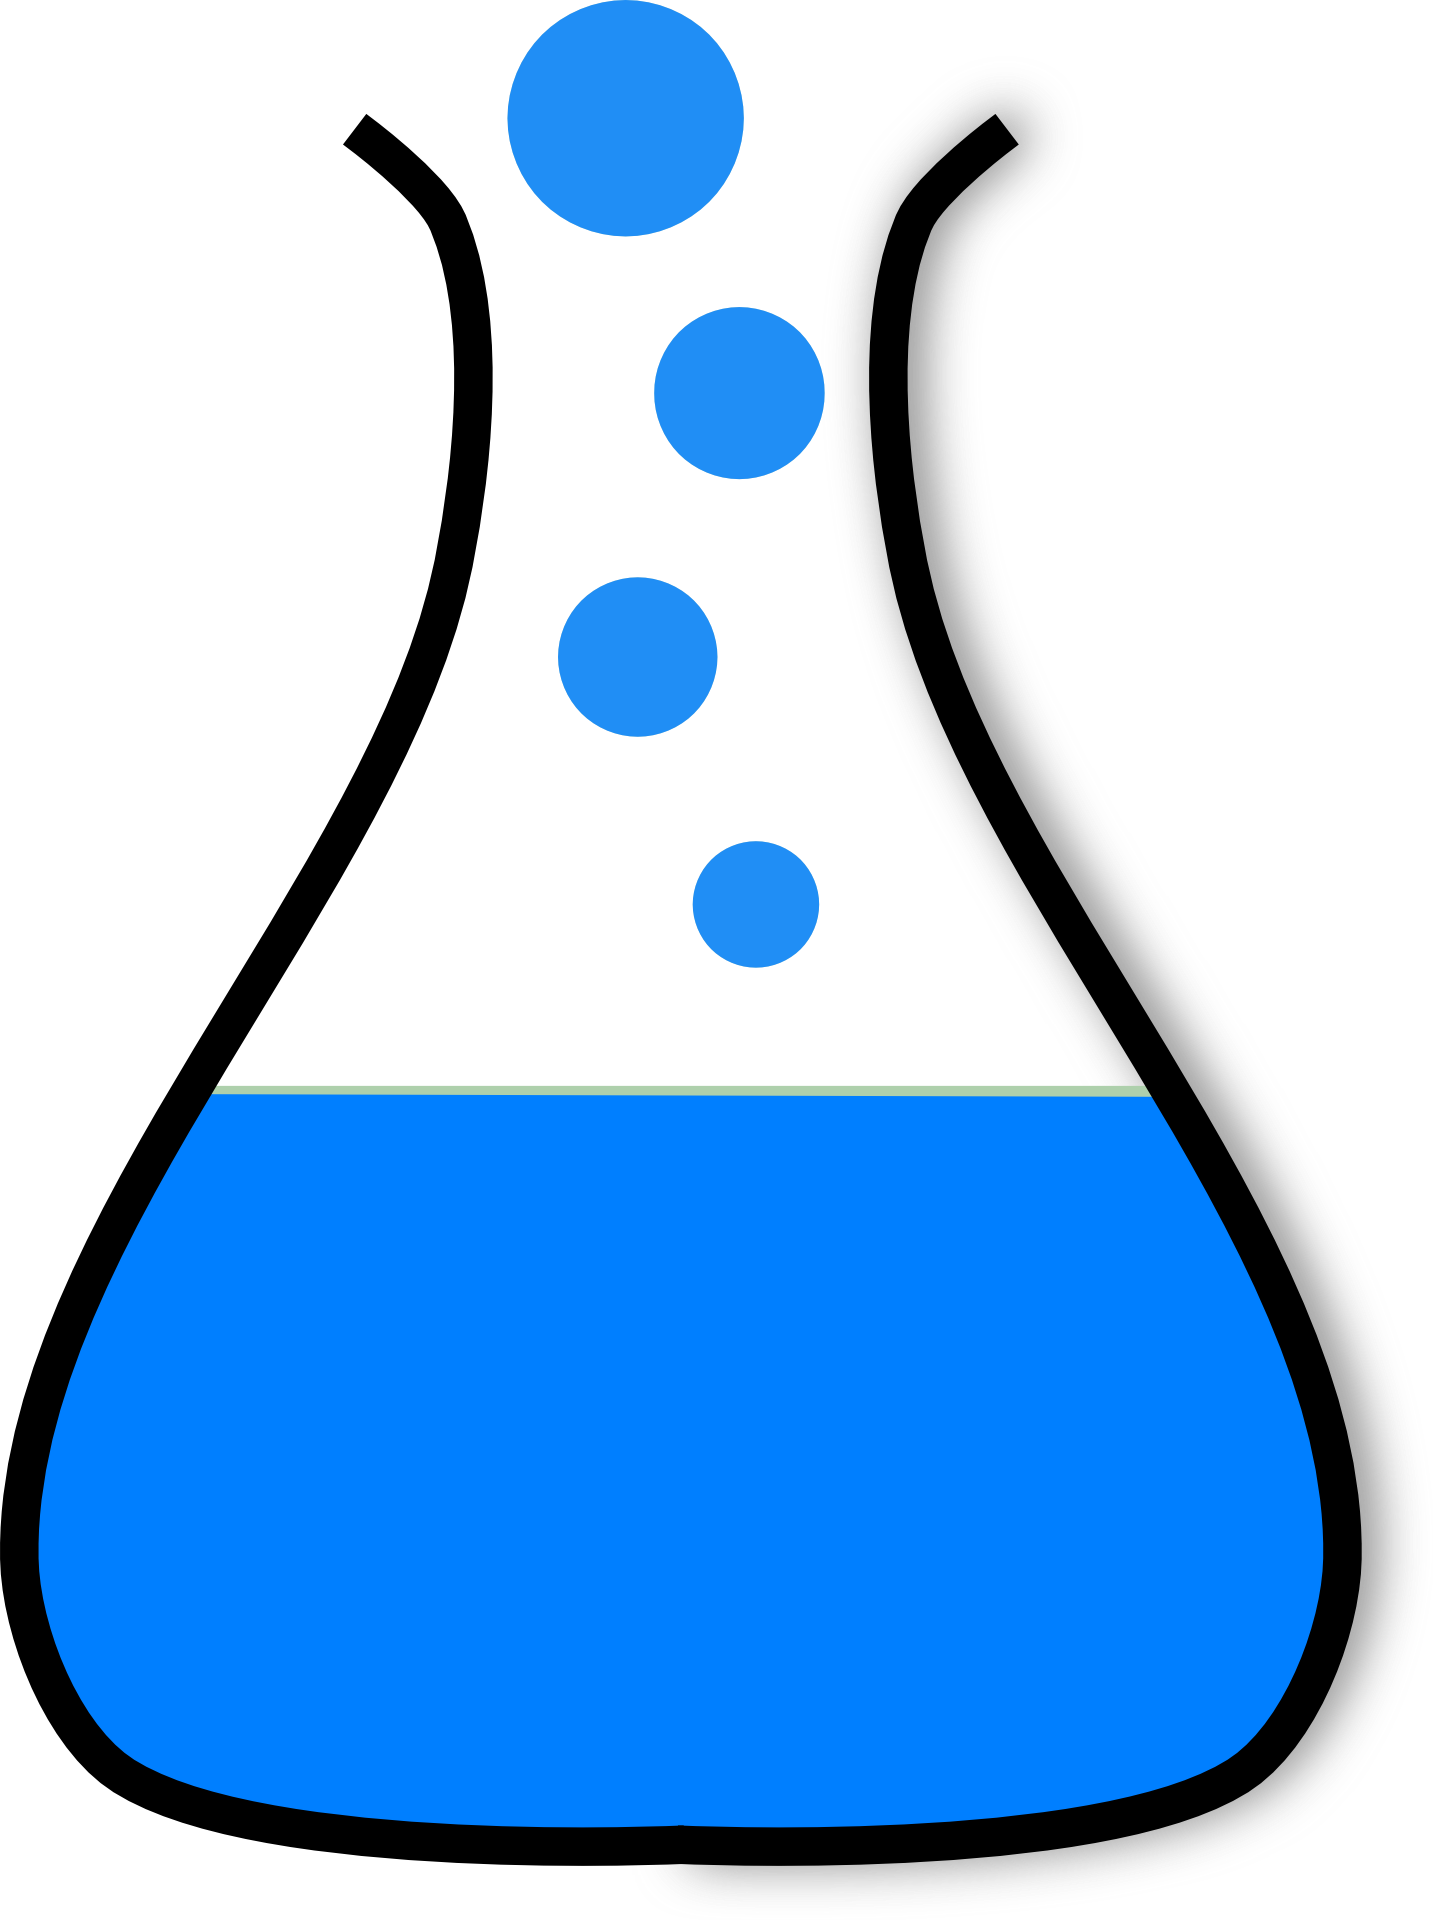 1433x1920 Drawn Erlenmeyer Flask Free Image